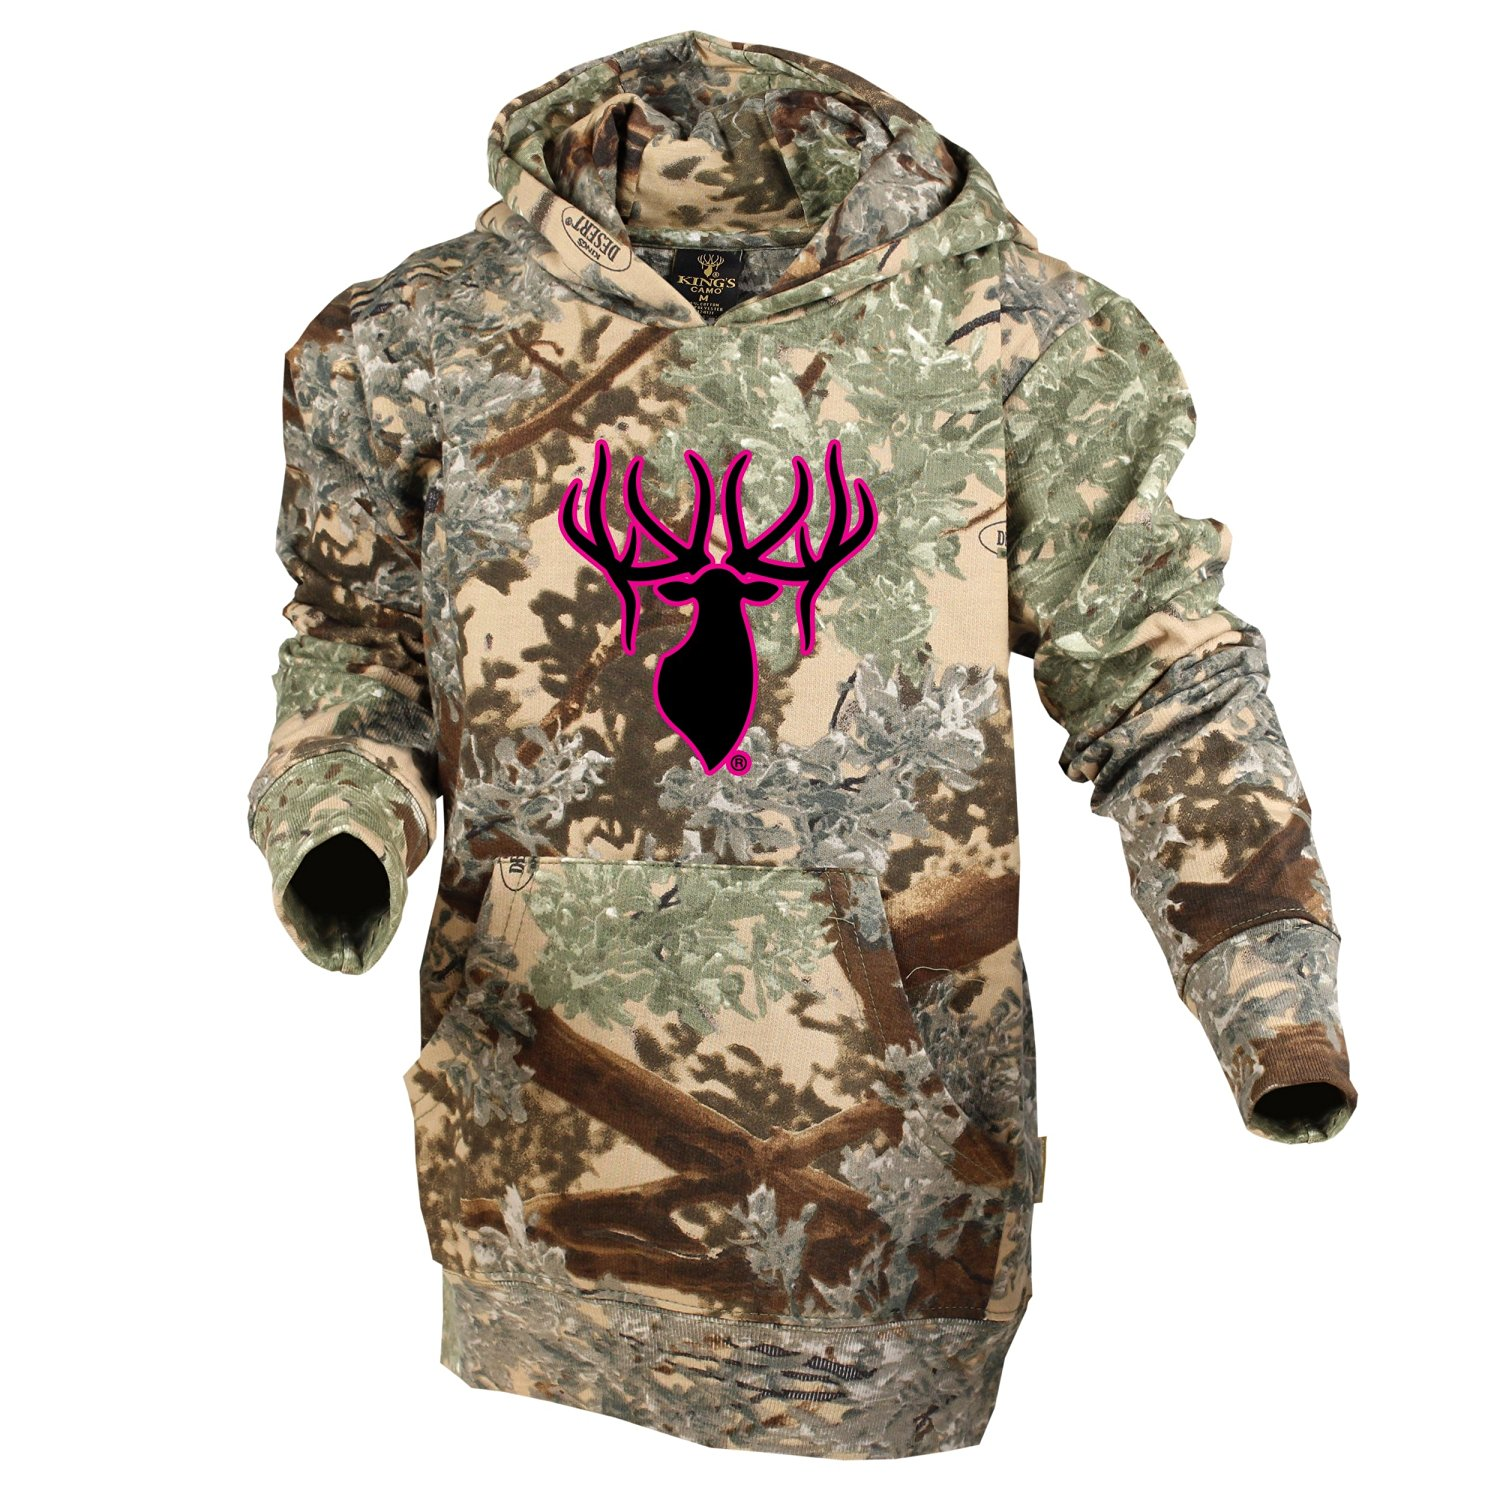 2a99a7c80b9e5 Get Quotations · King's Camo Kids Cotton Hoodie Desert Shadow w/ Elk Black  and Pink Logo Camouflage Youth